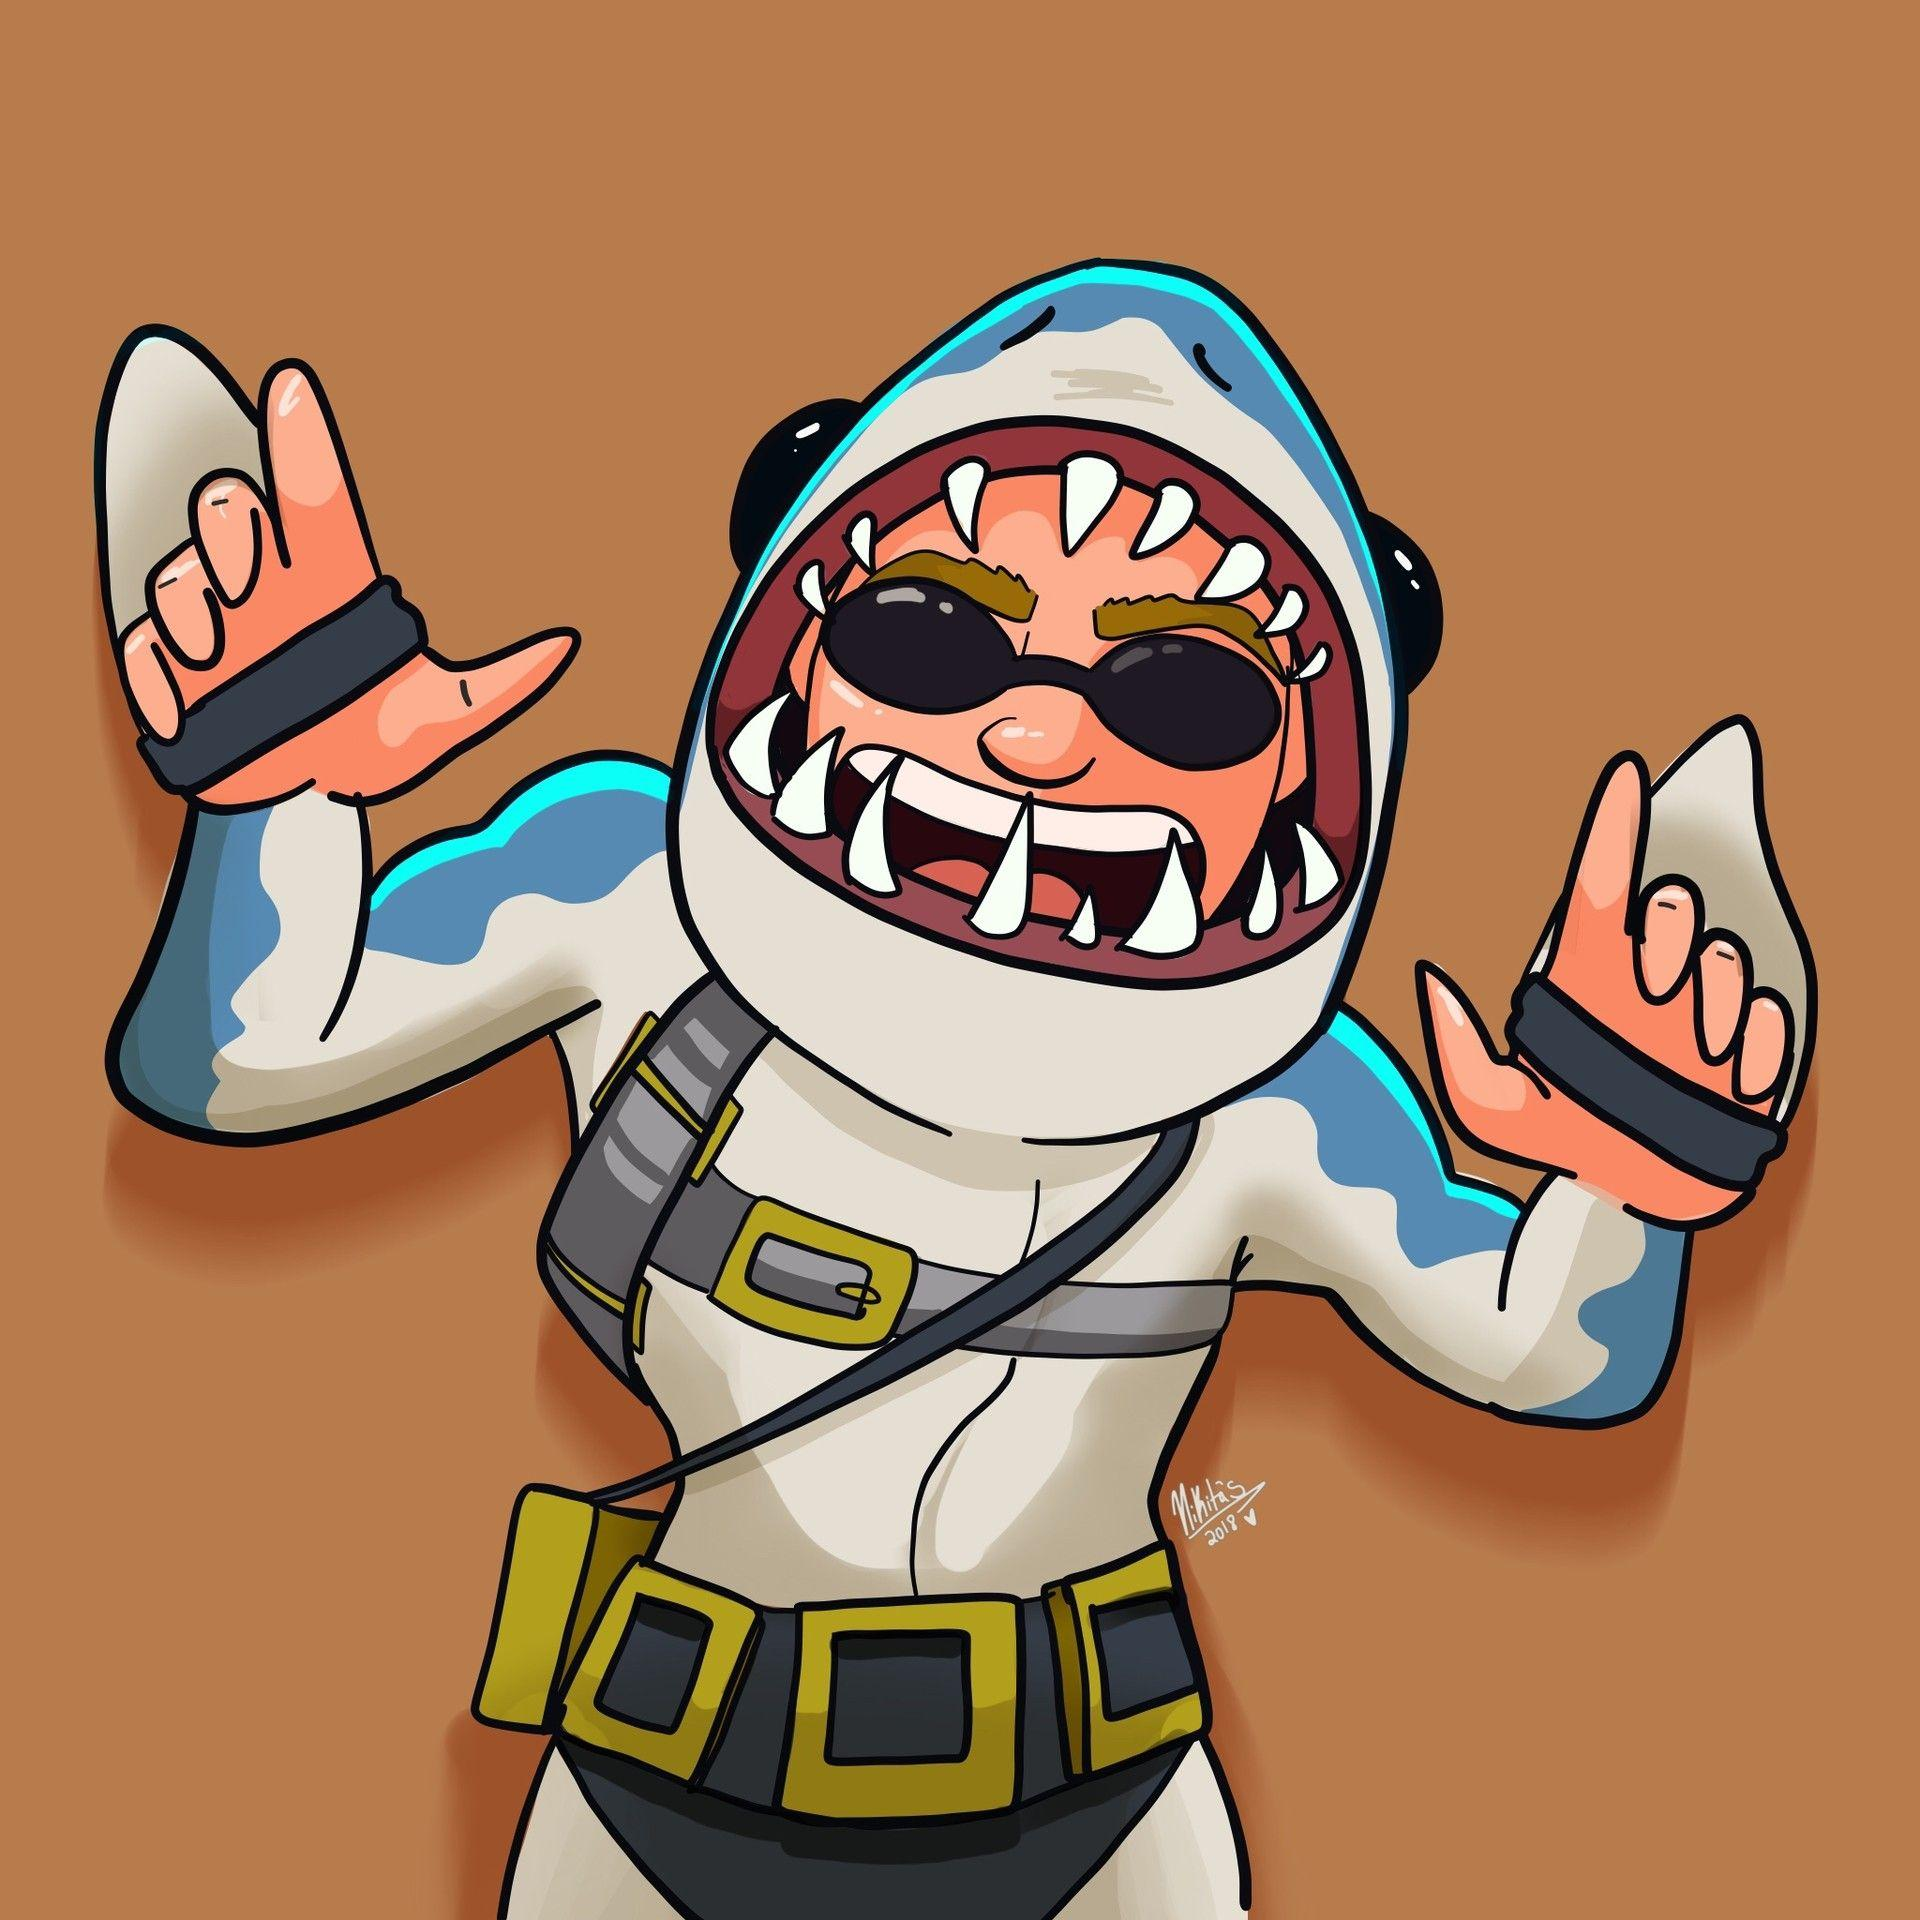 ArtStation - Fortnite chomp SR. Fanart, Nicole Davila